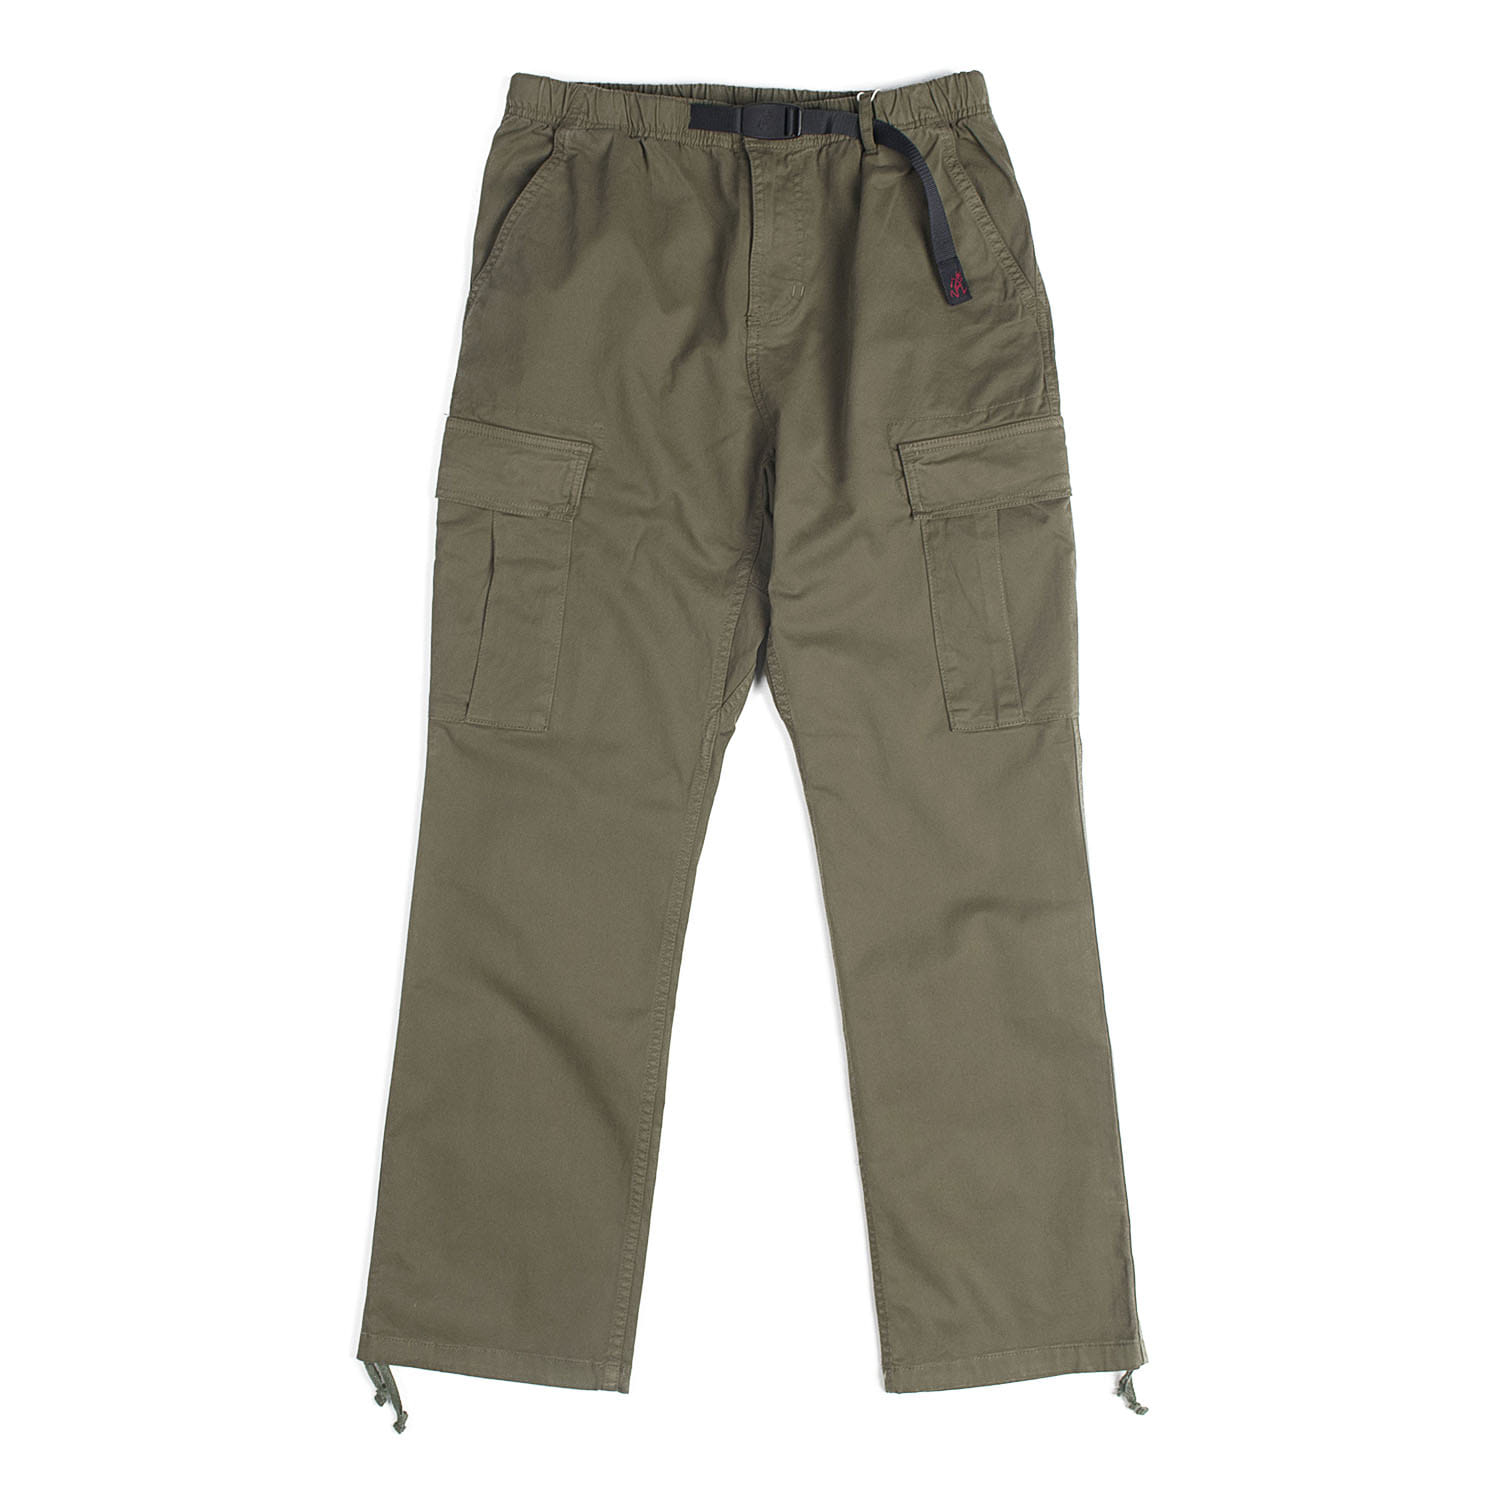 Gramicci Cargo Pants (Olive)